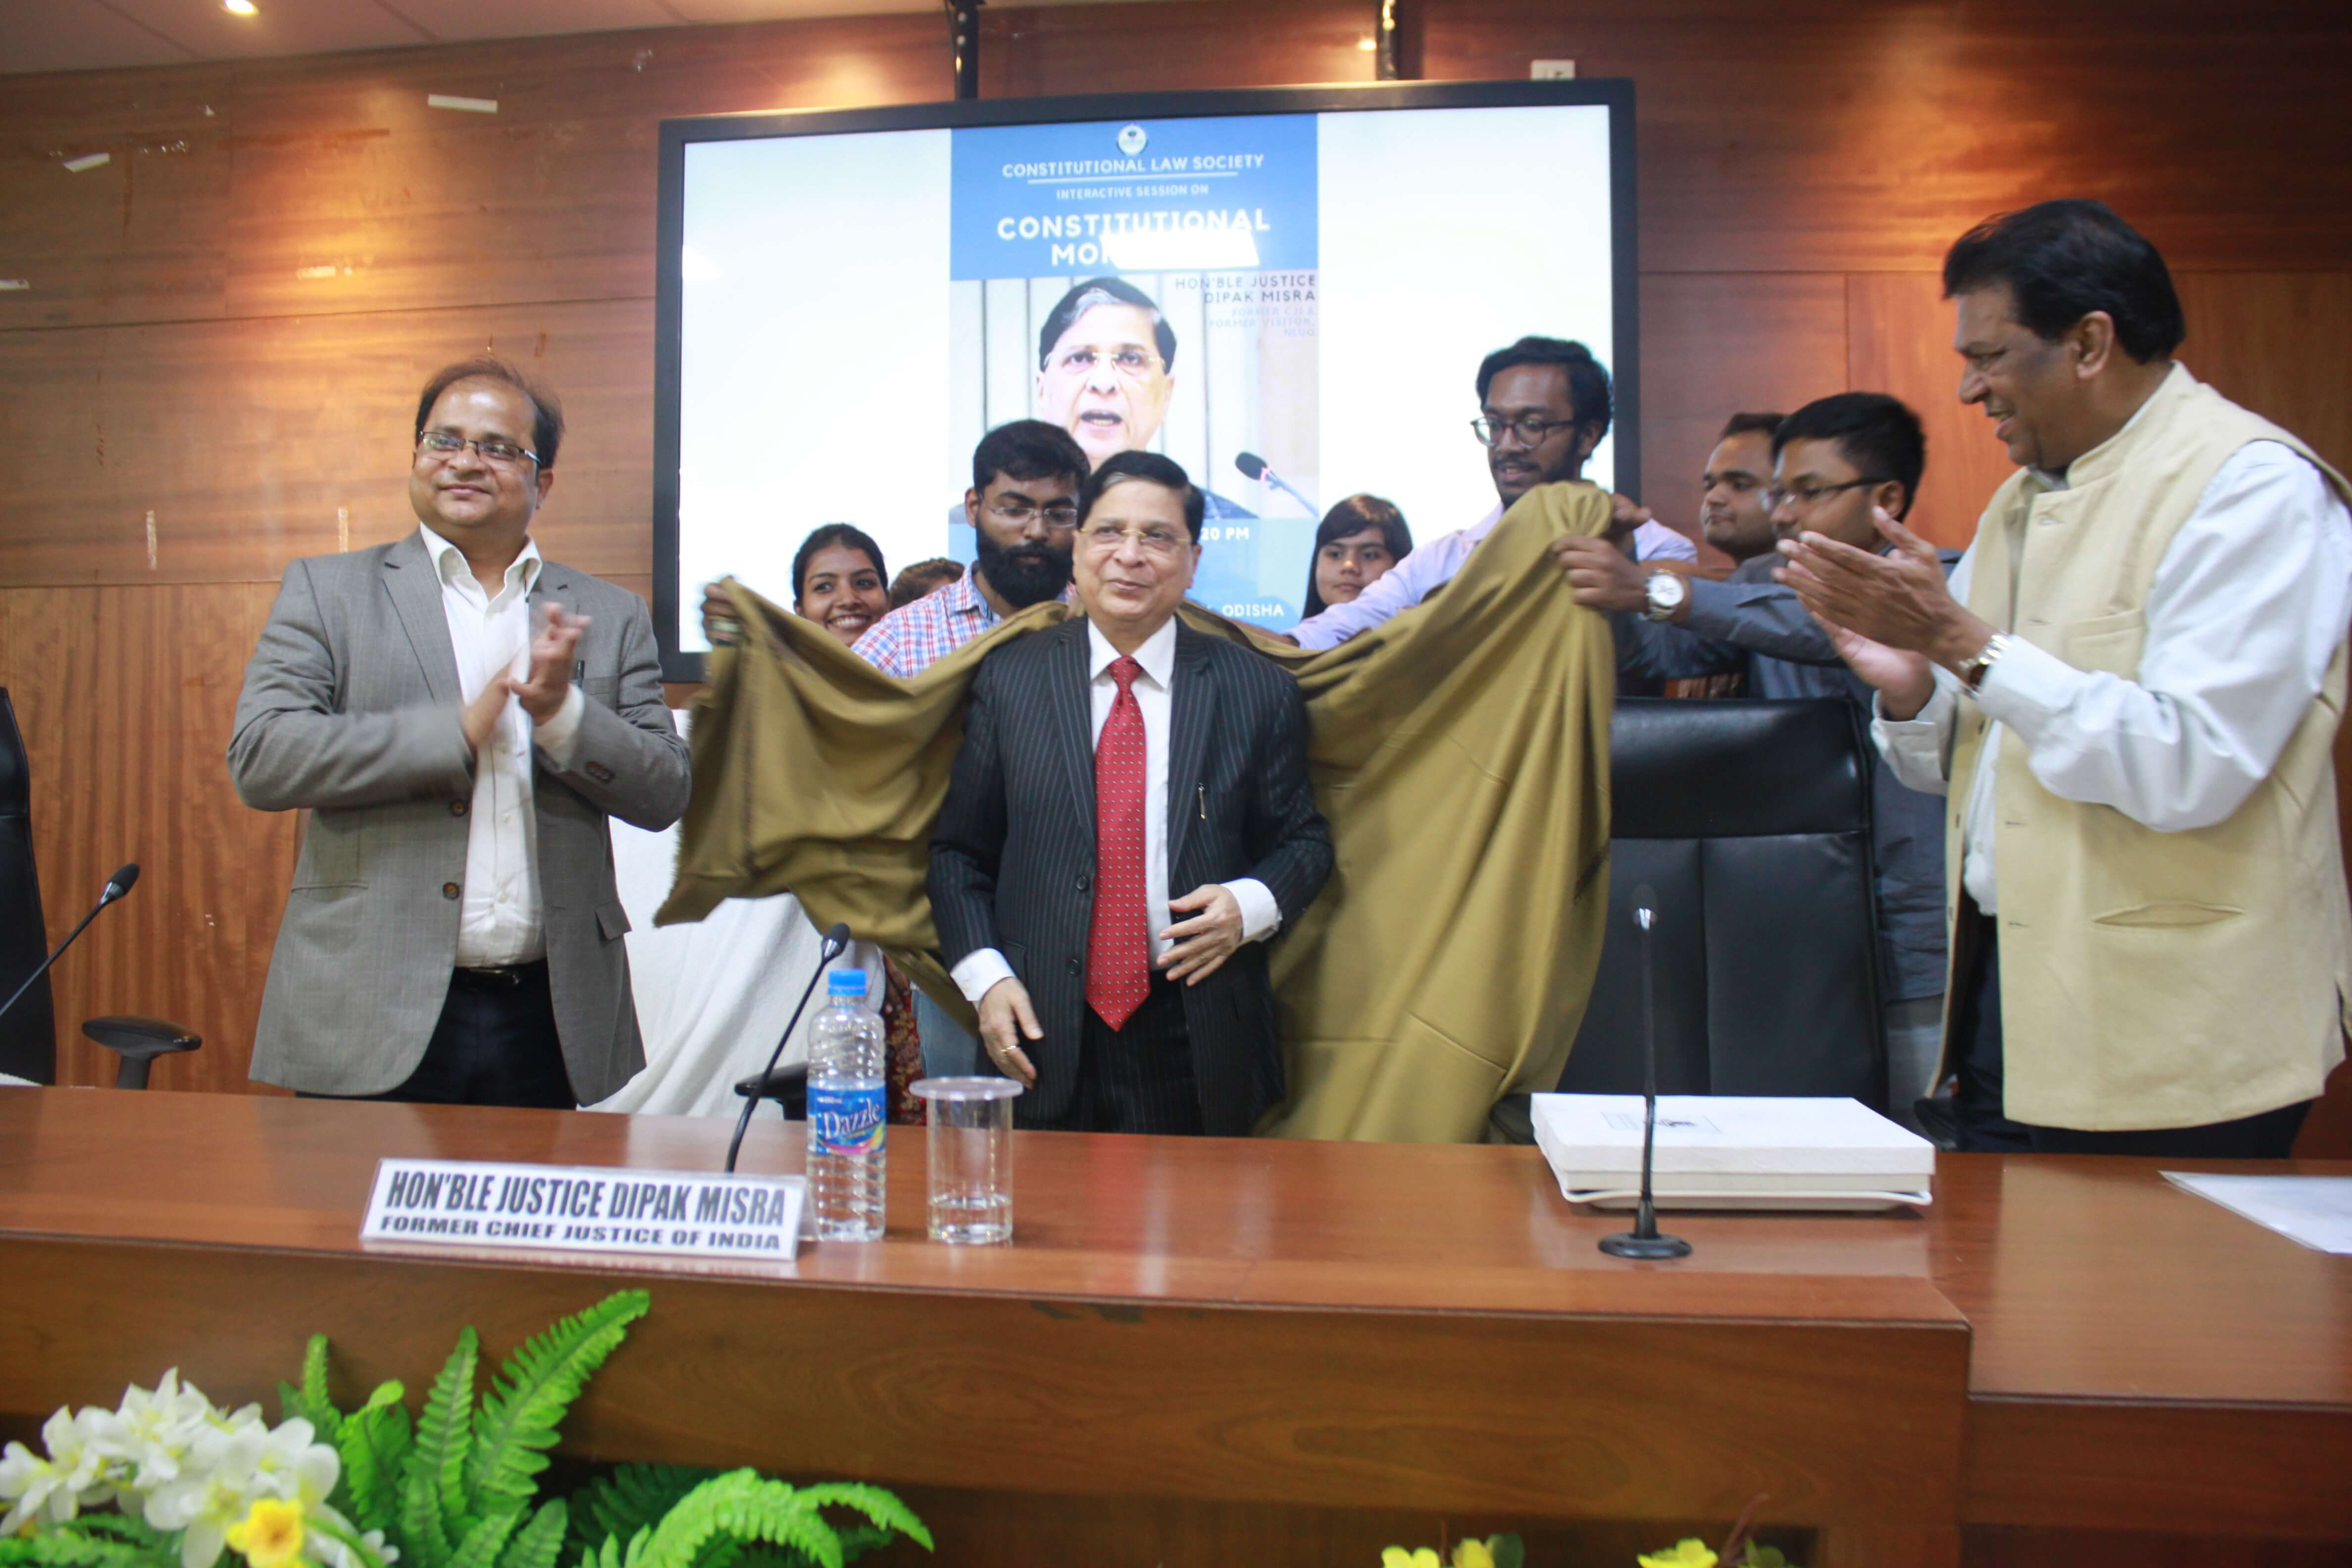 Interaction of Hon'ble Justice Dipak Misra with students and faculty members